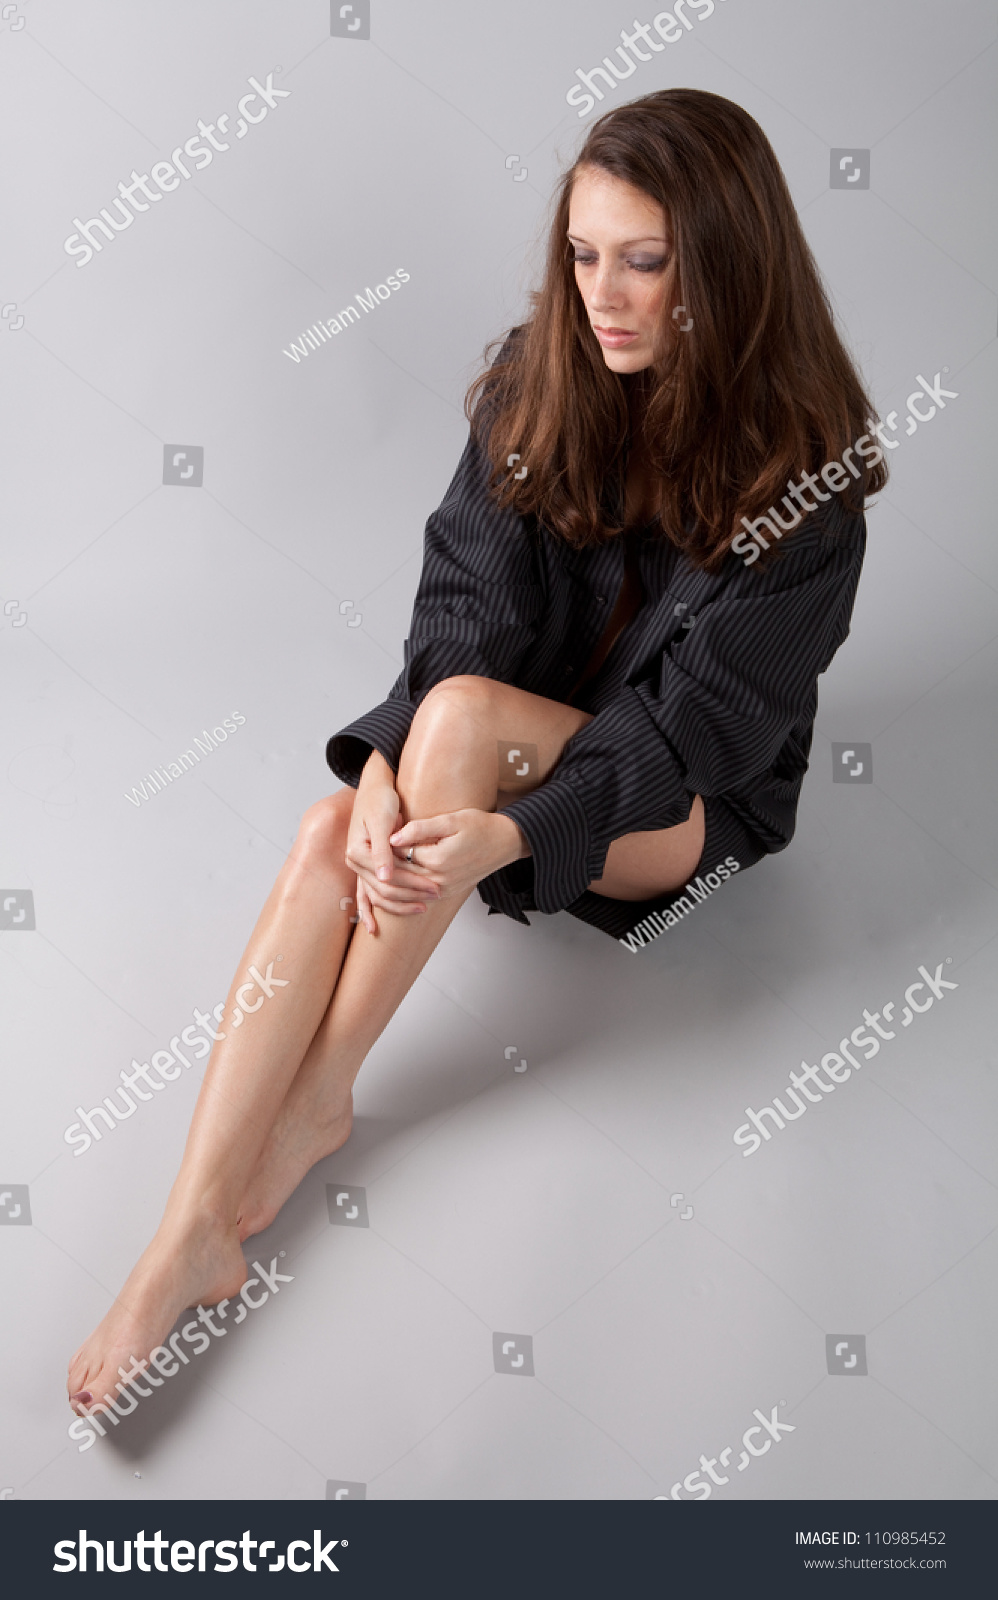 sexy woman man shirt bare legs stock photo (royalty free) 110985452